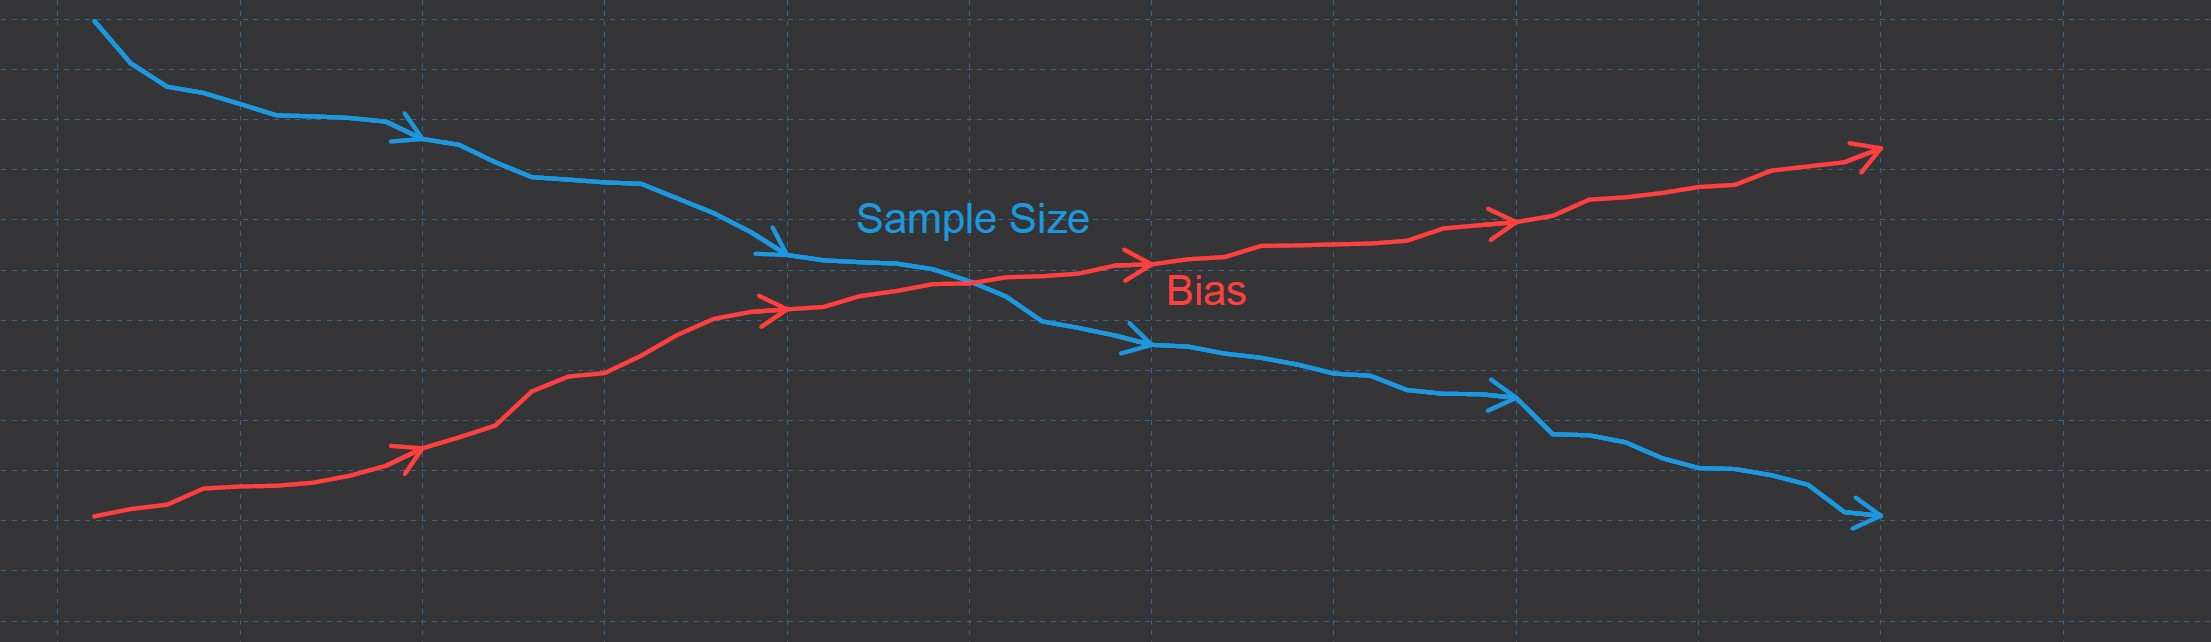 Complete Case Analysis Bias and Sample Size